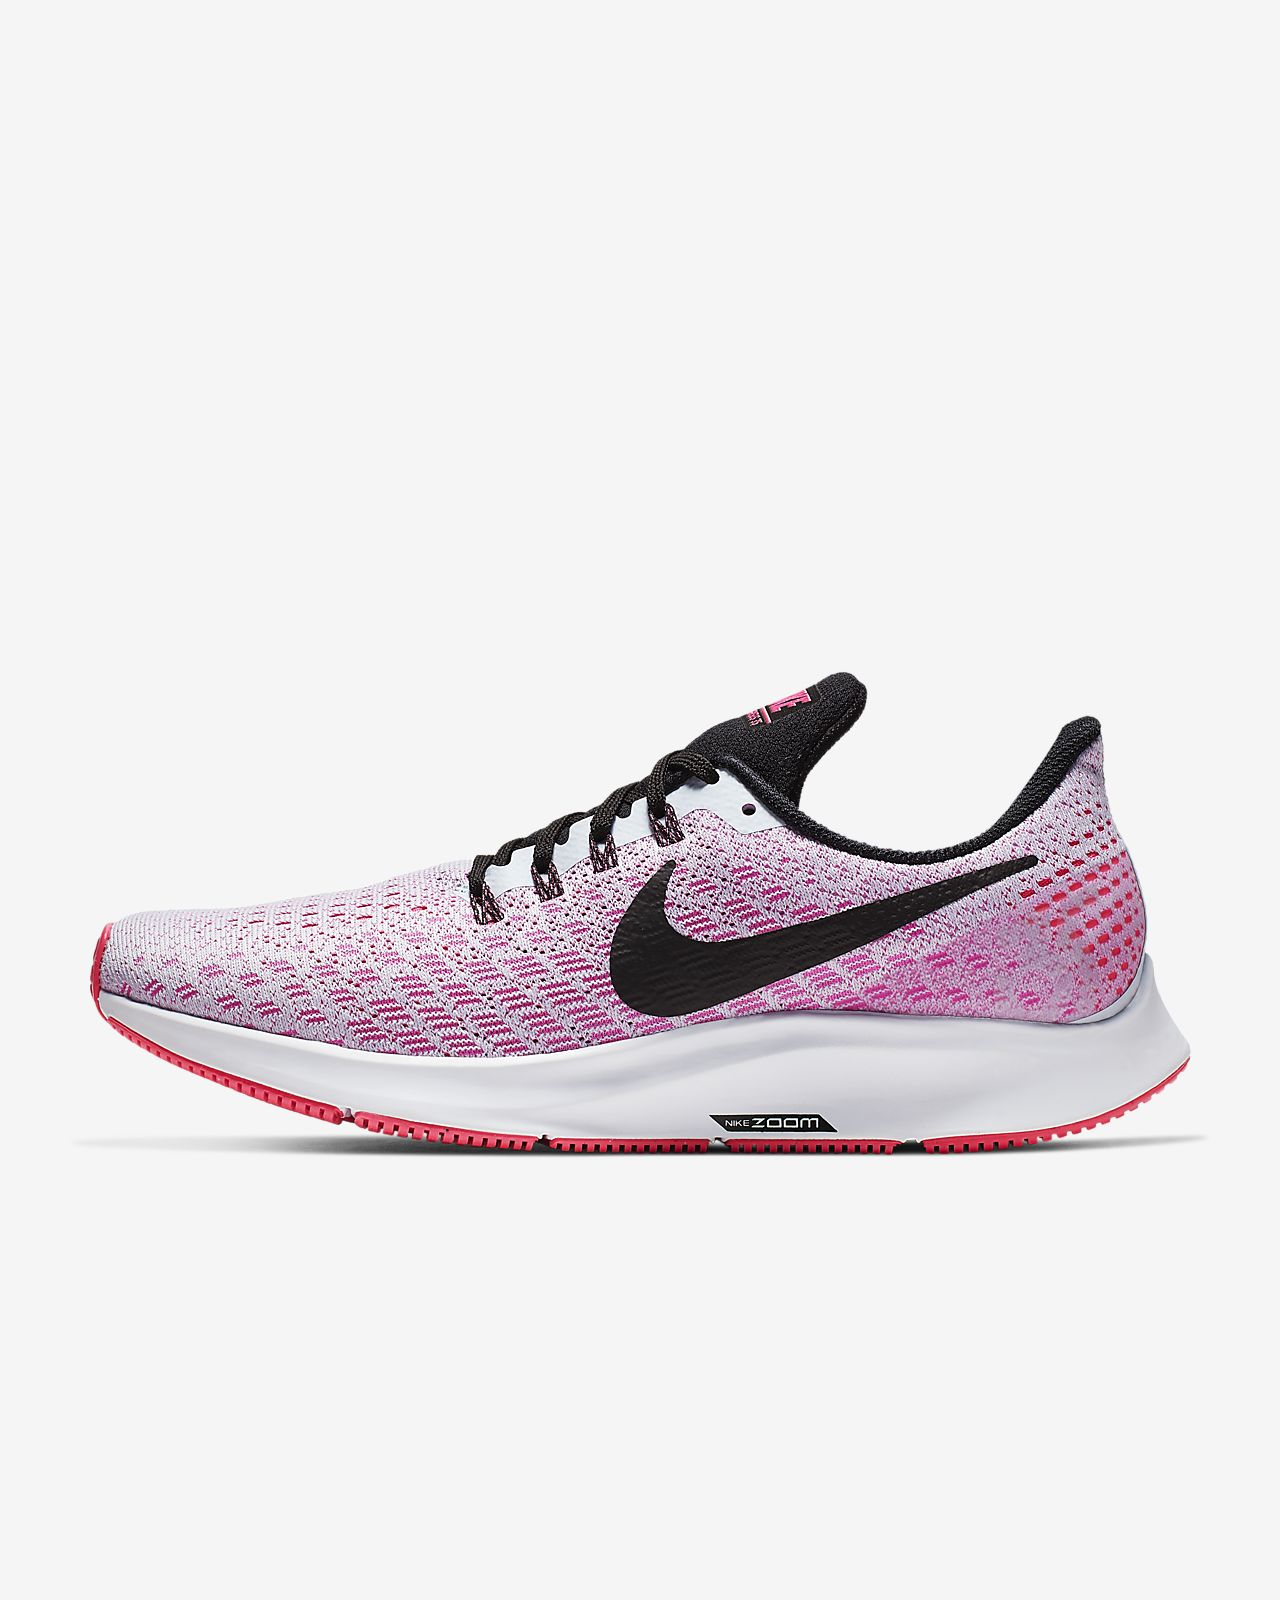 0eeb653ee7ab Nike Air Zoom Pegasus 35 Women s Running Shoe. Nike.com